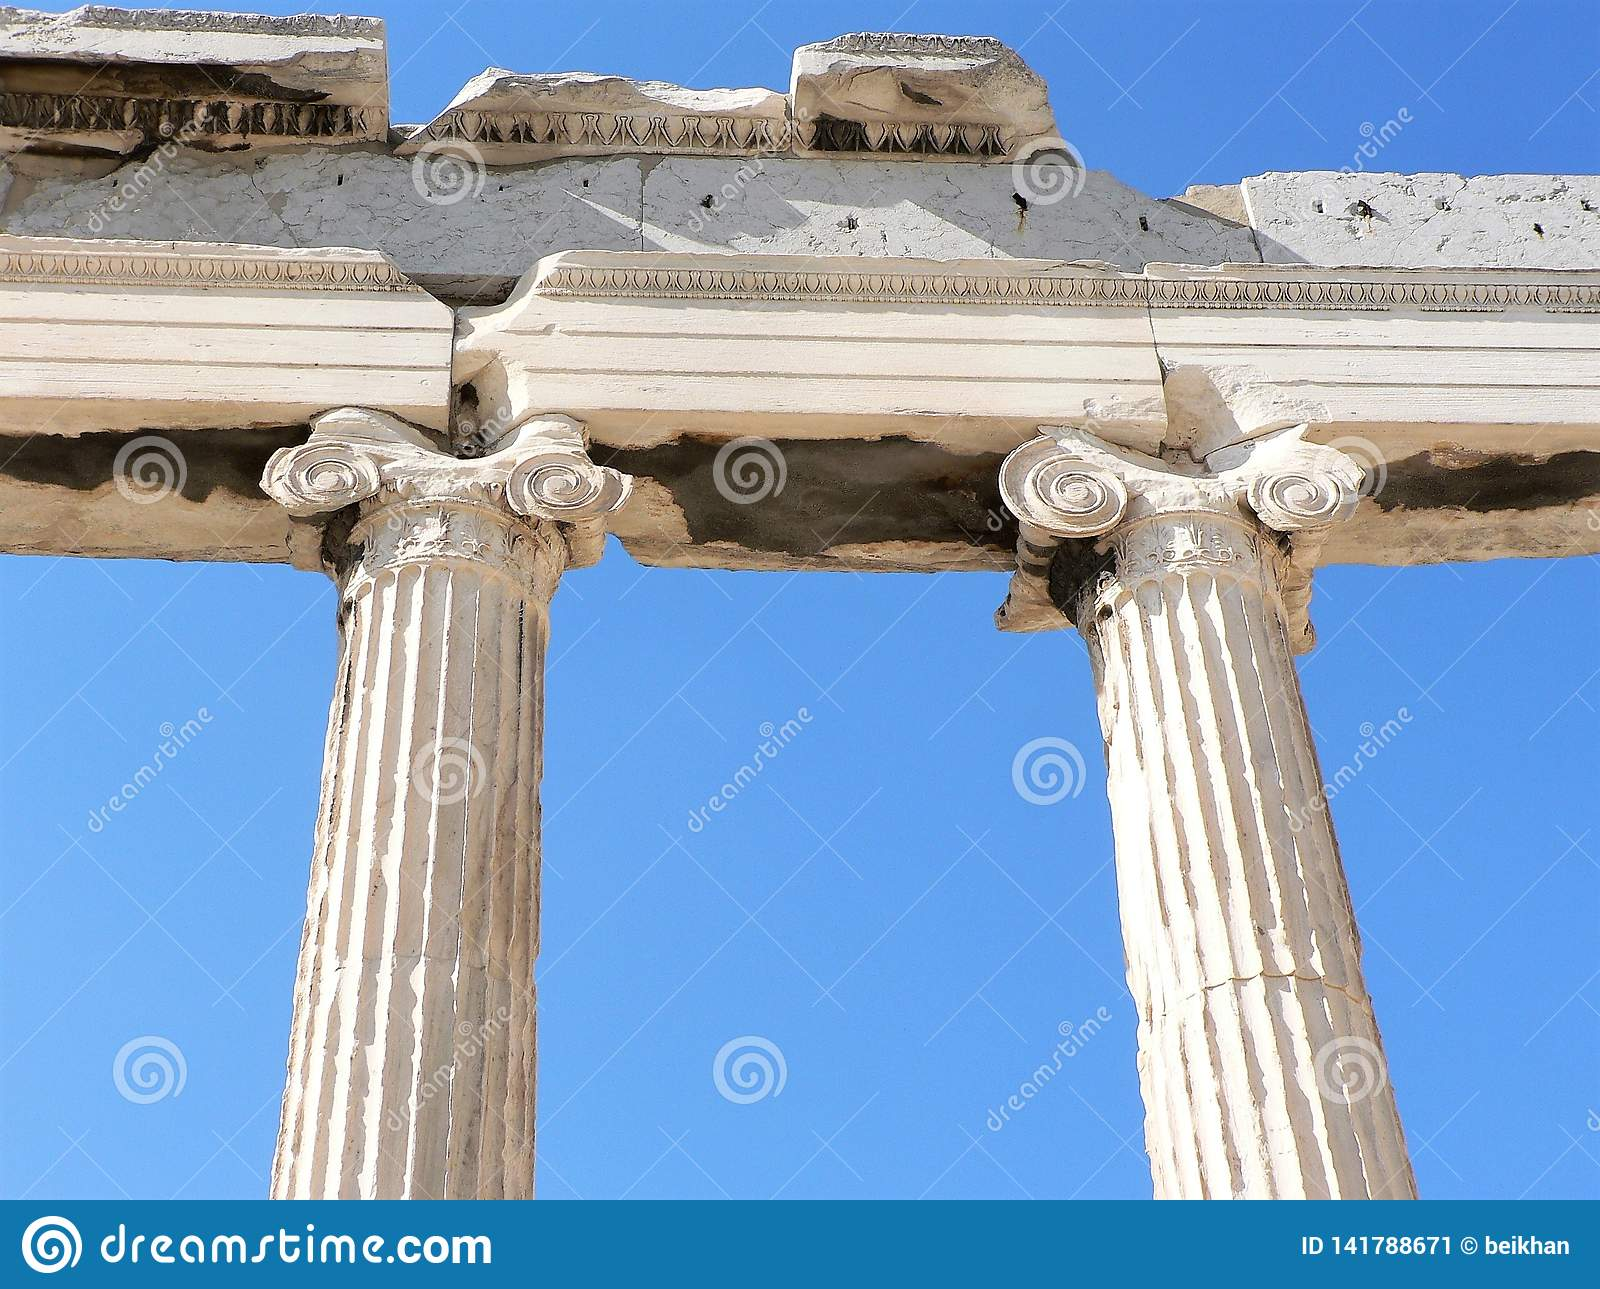 Detailed and close-up view of ancient Greek columns.